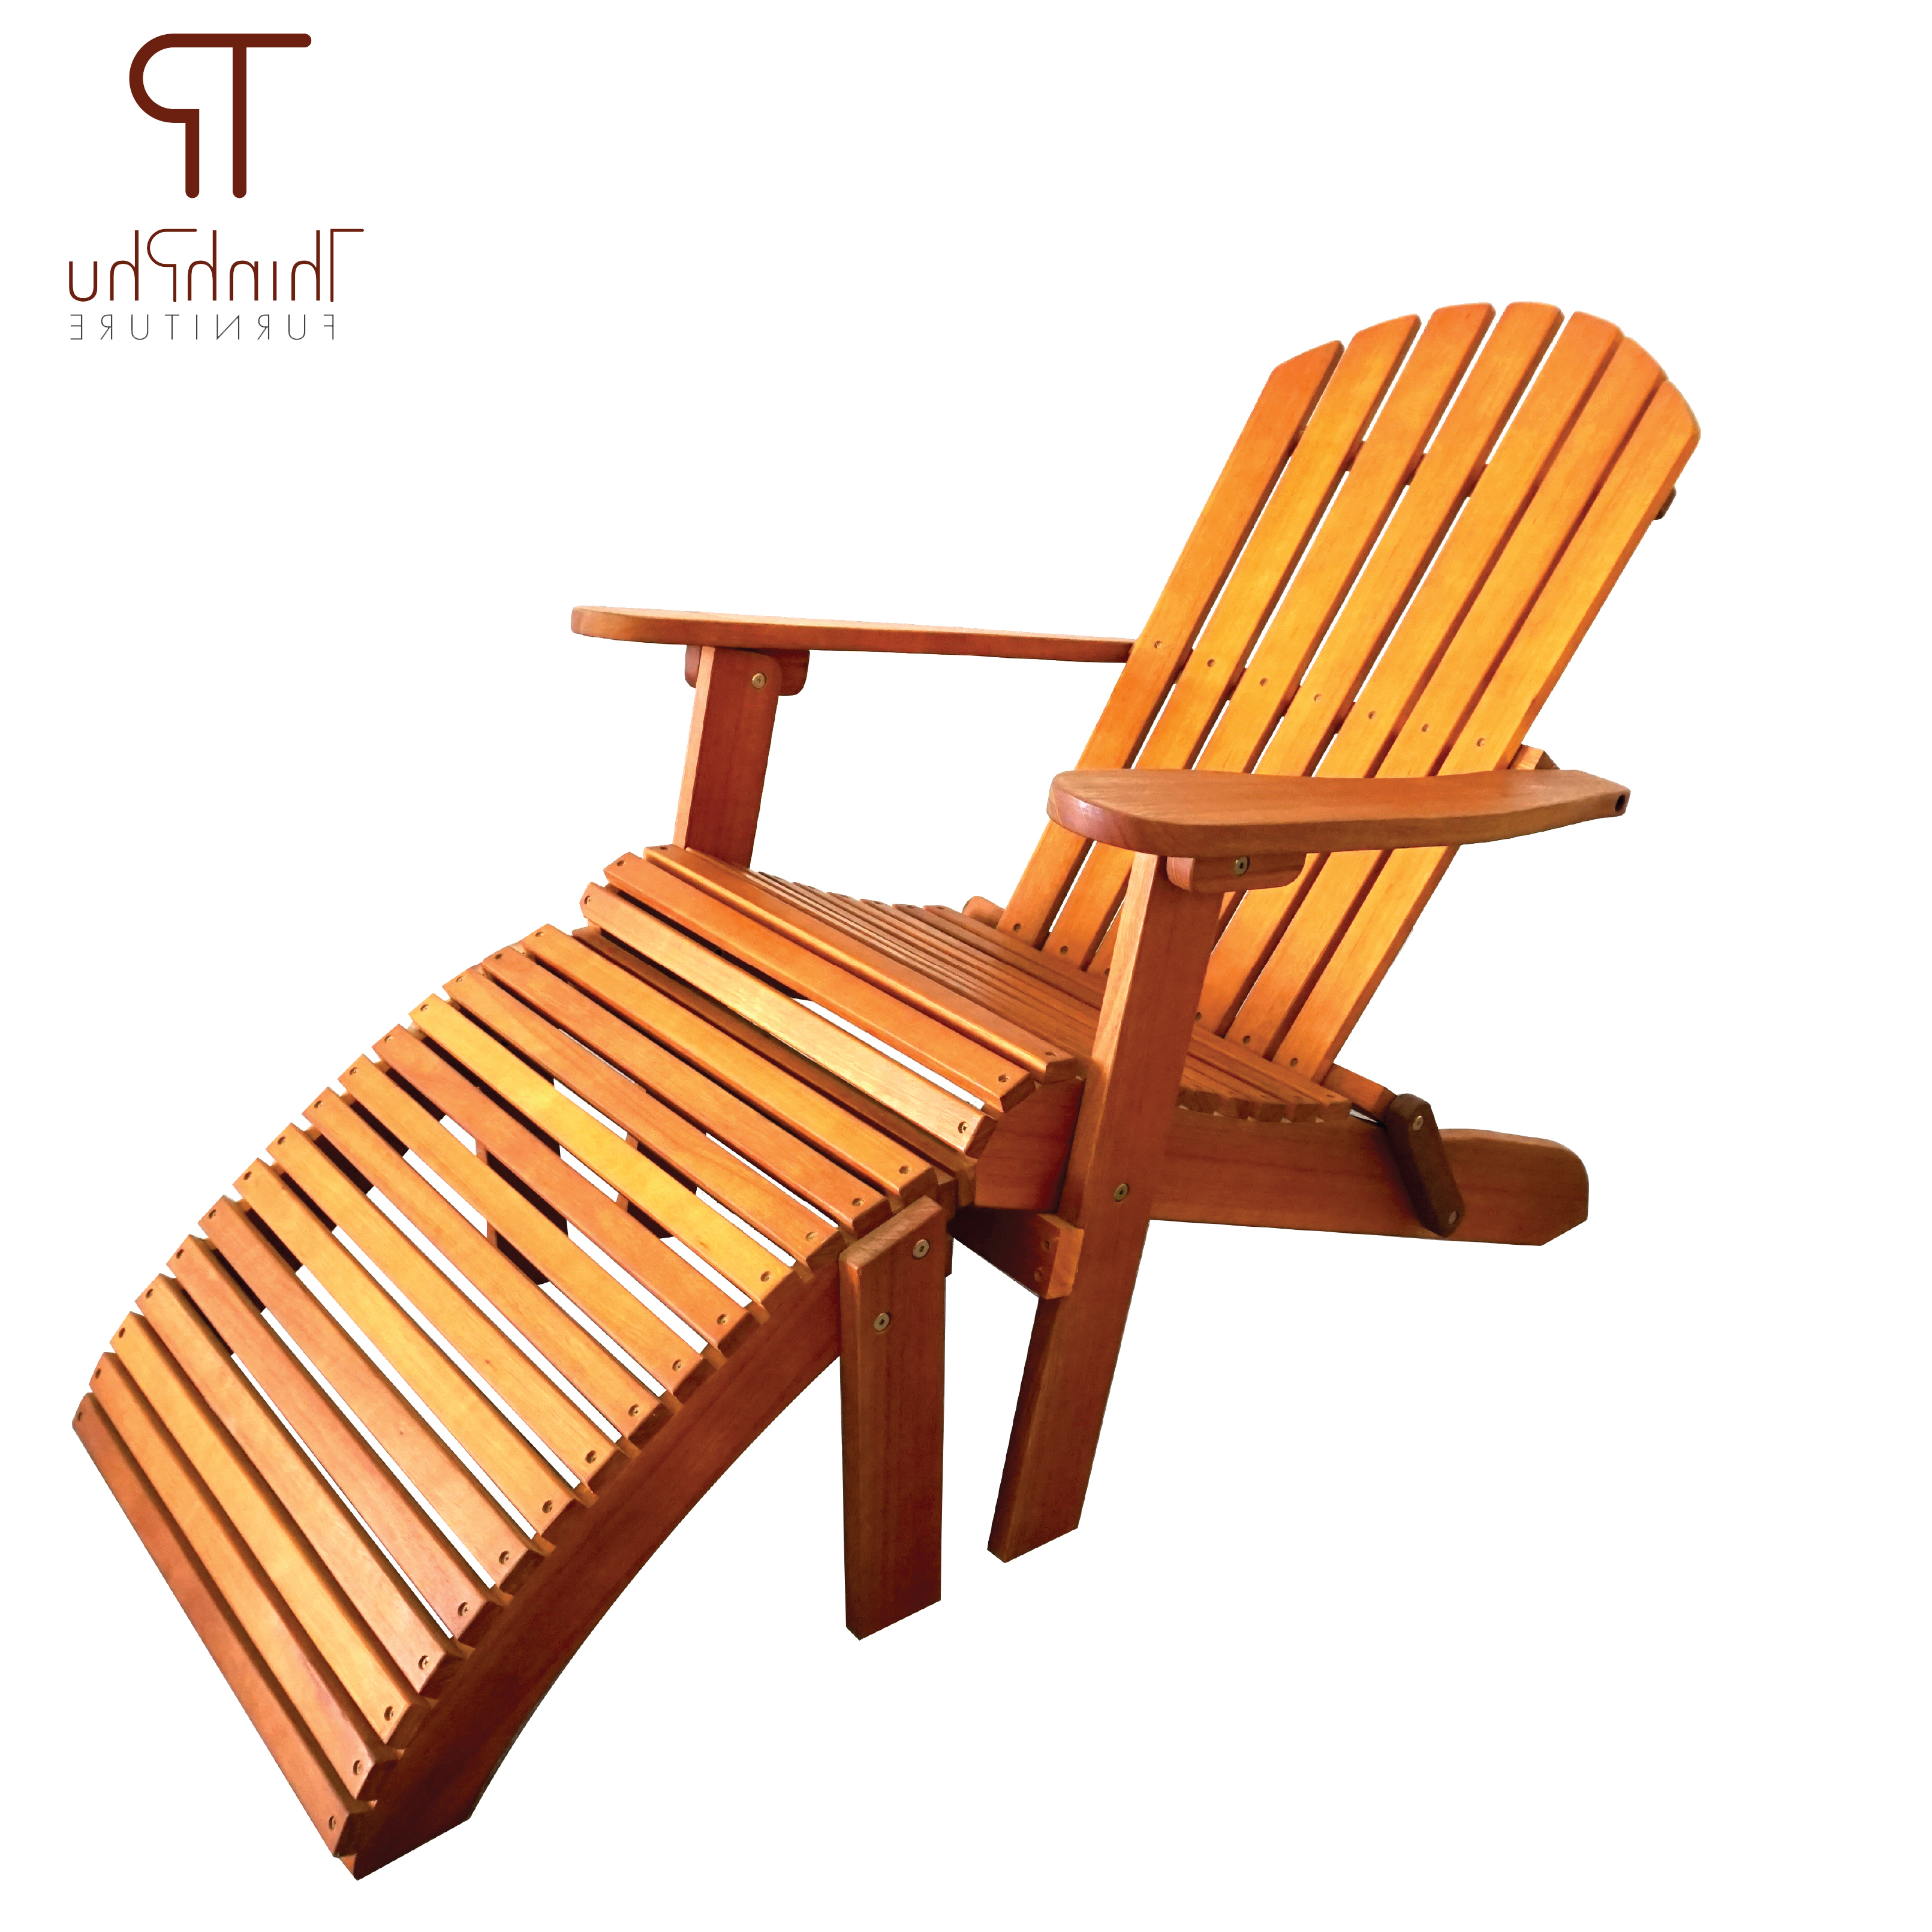 Adirondack Chairs With Footrest Regarding 2020 Adirondack Chair With Footrest Luxius (View 6 of 25)